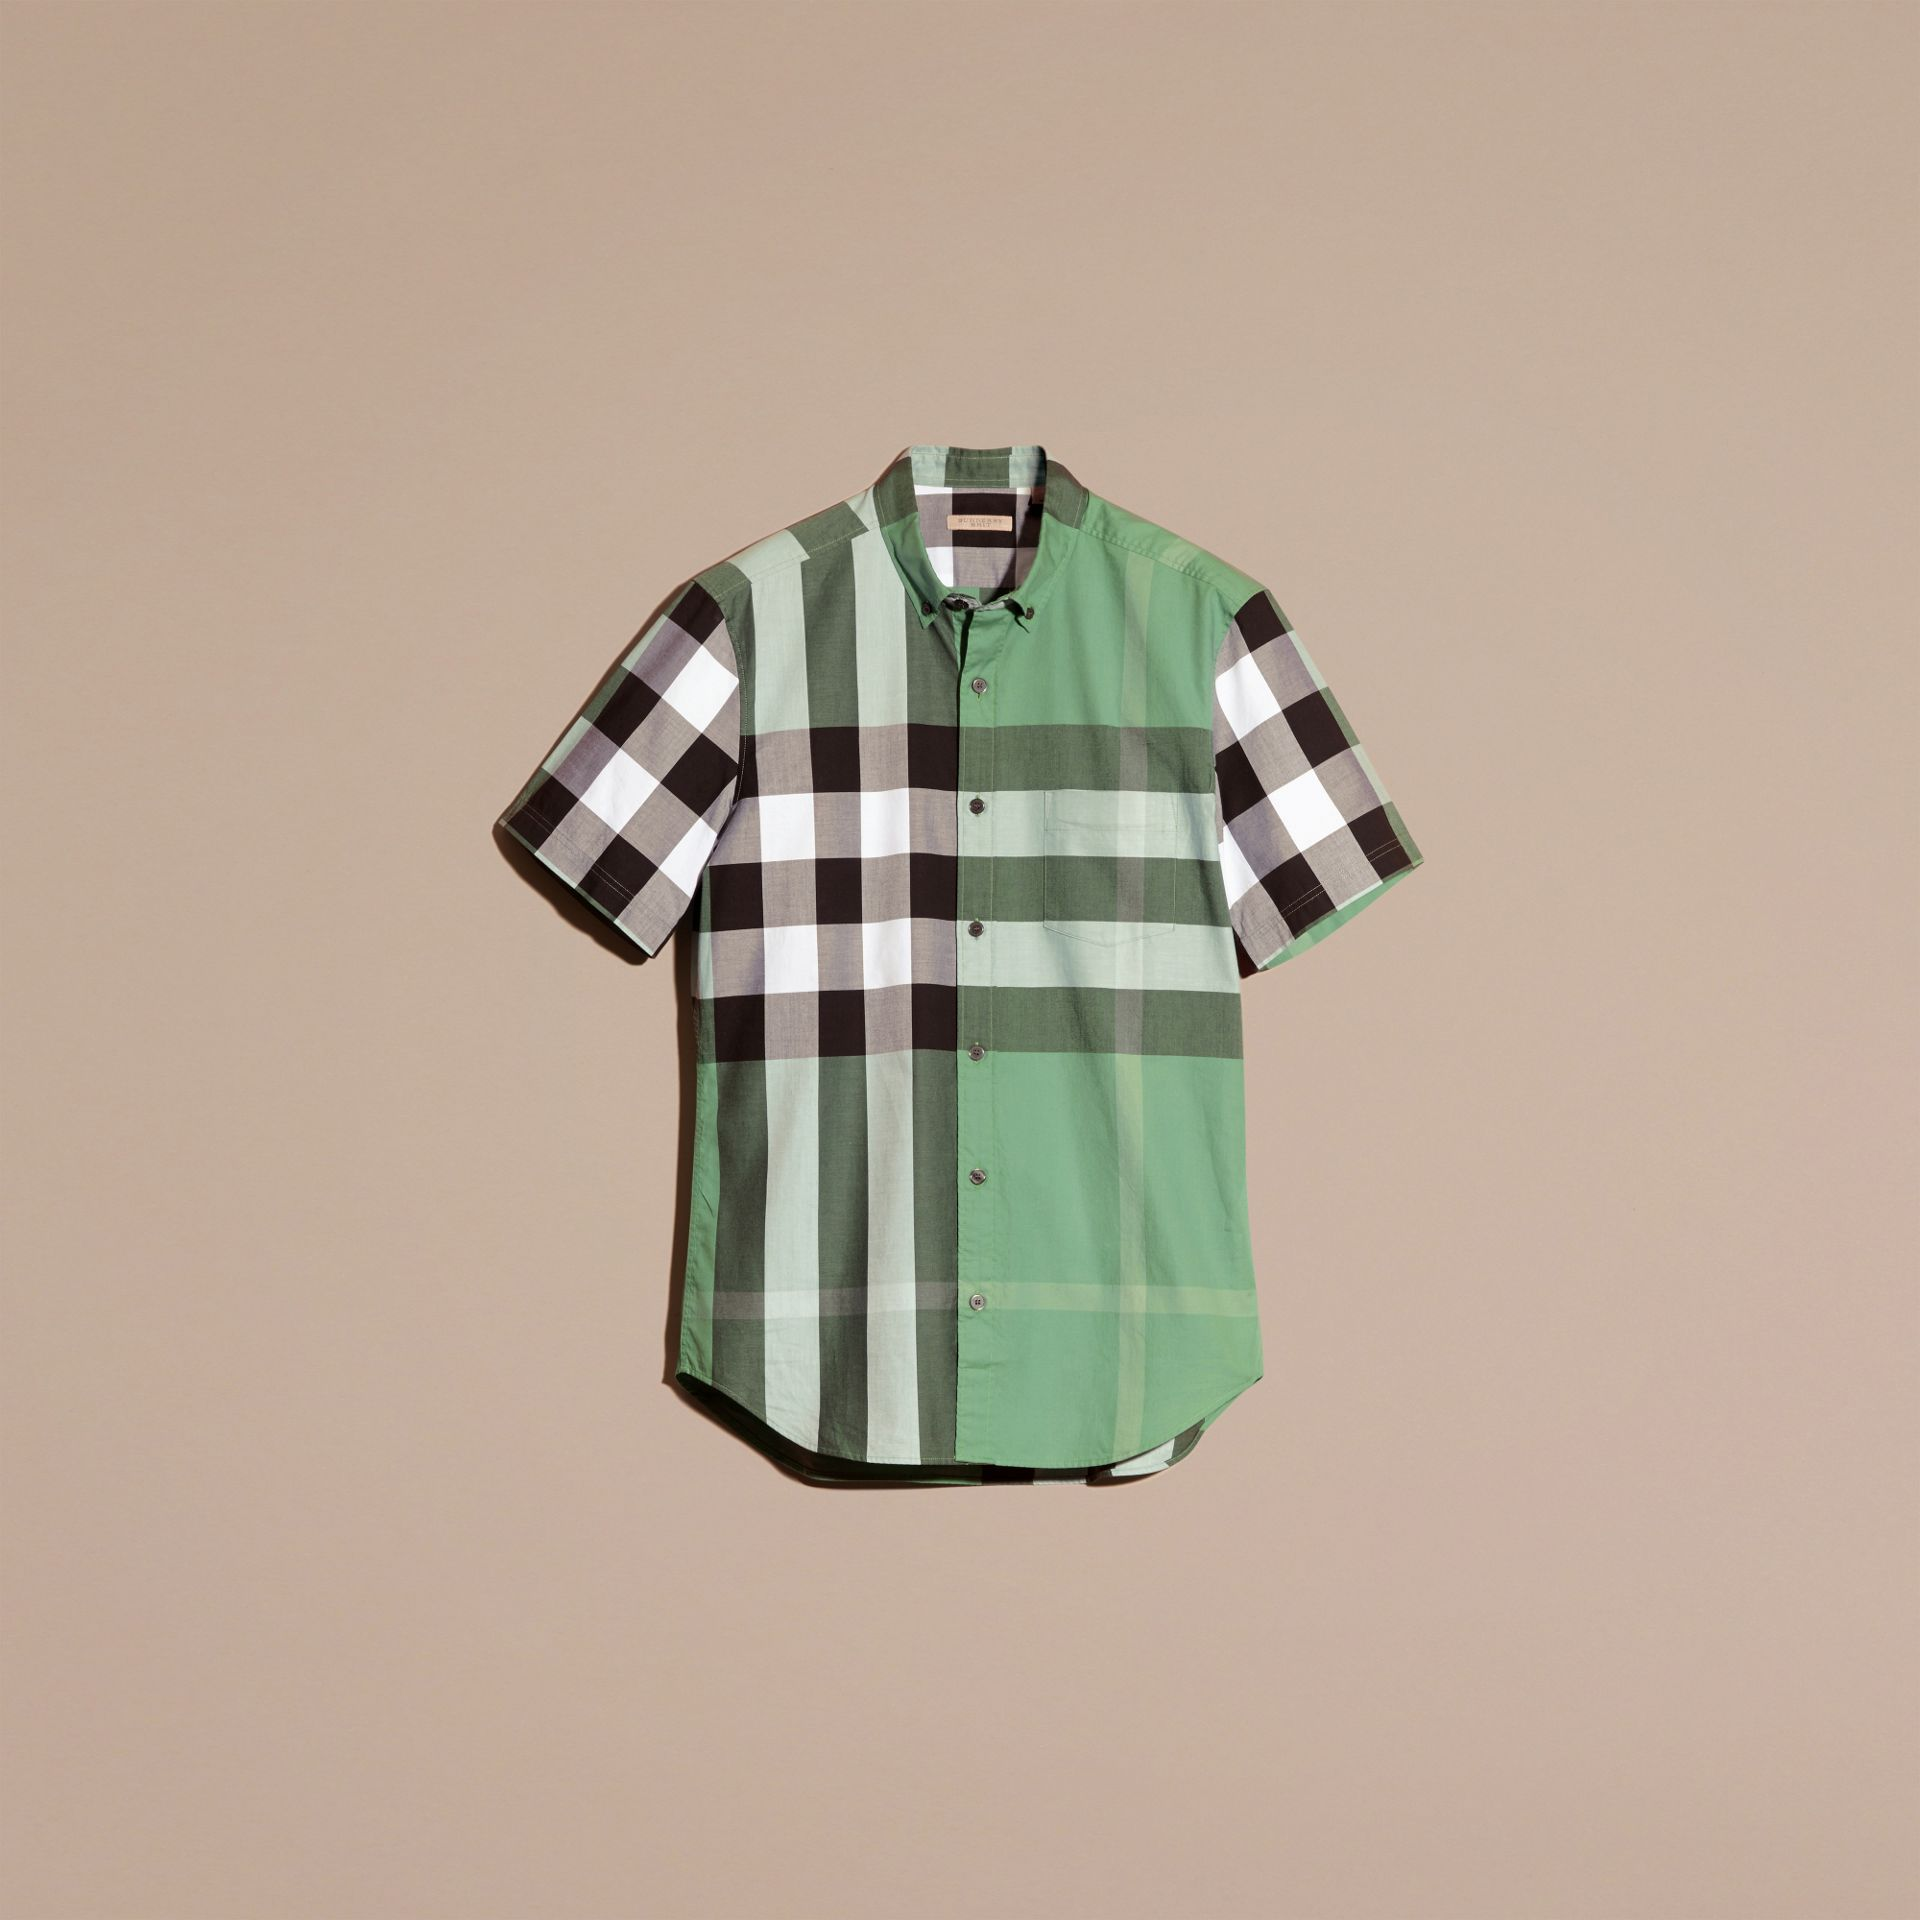 Aqua green Short-sleeved Check Cotton Shirt Aqua Green - gallery image 4